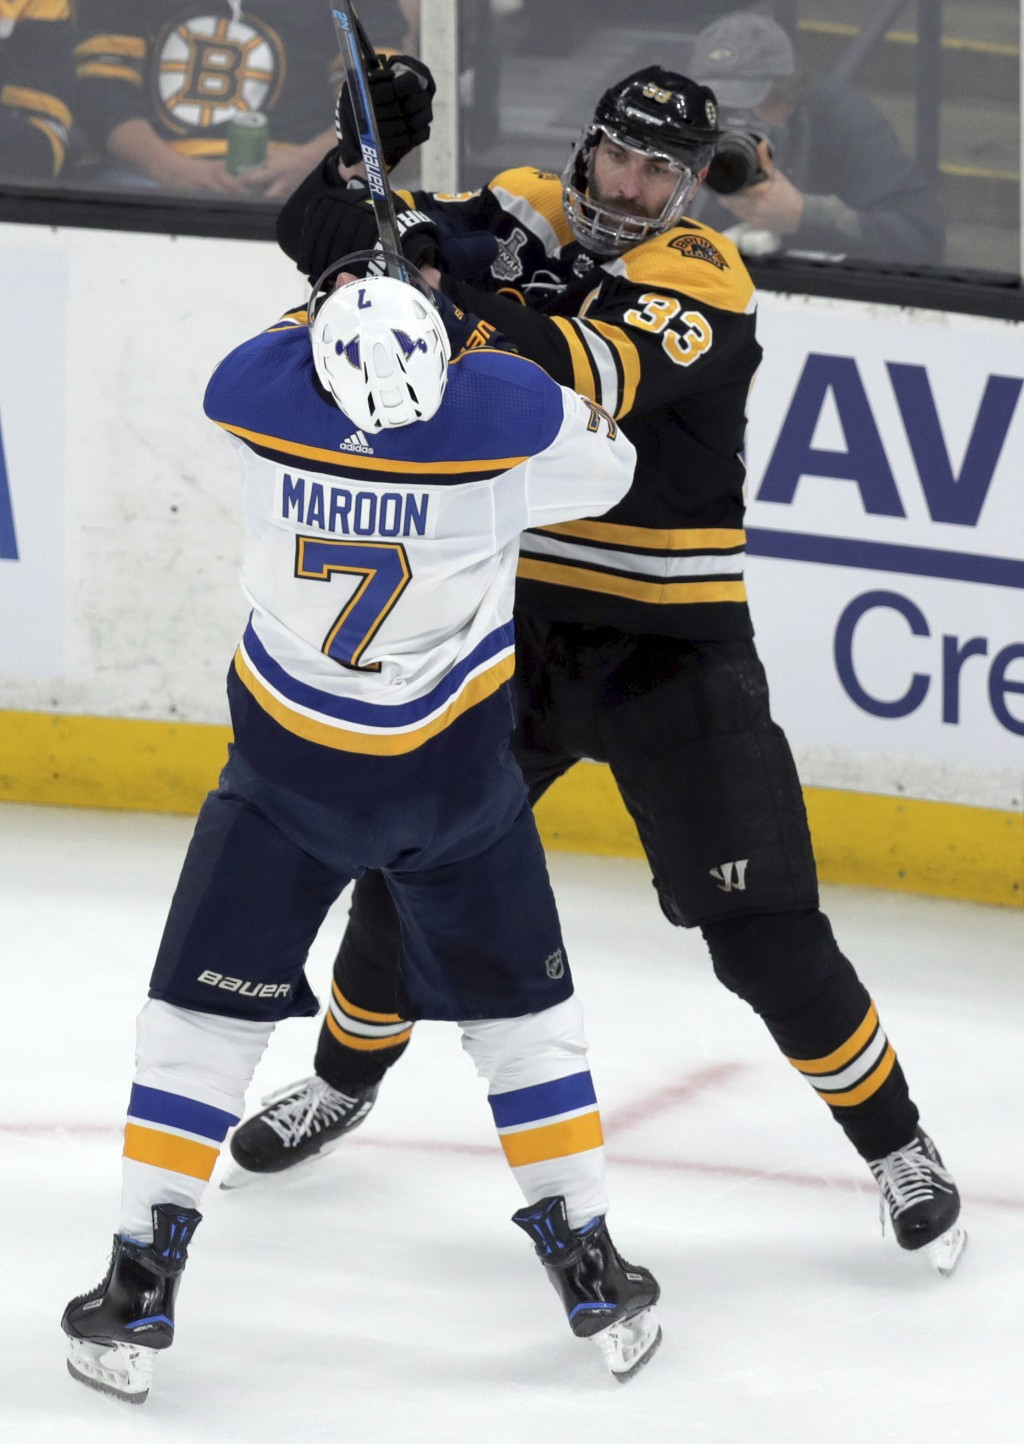 St. Louis Blues' Pat Maroon (7) tangles with Boston Bruins' Zdeno Chara, right, of Slovakia, during the first period in Game 7 of the NHL hockey Stanl...